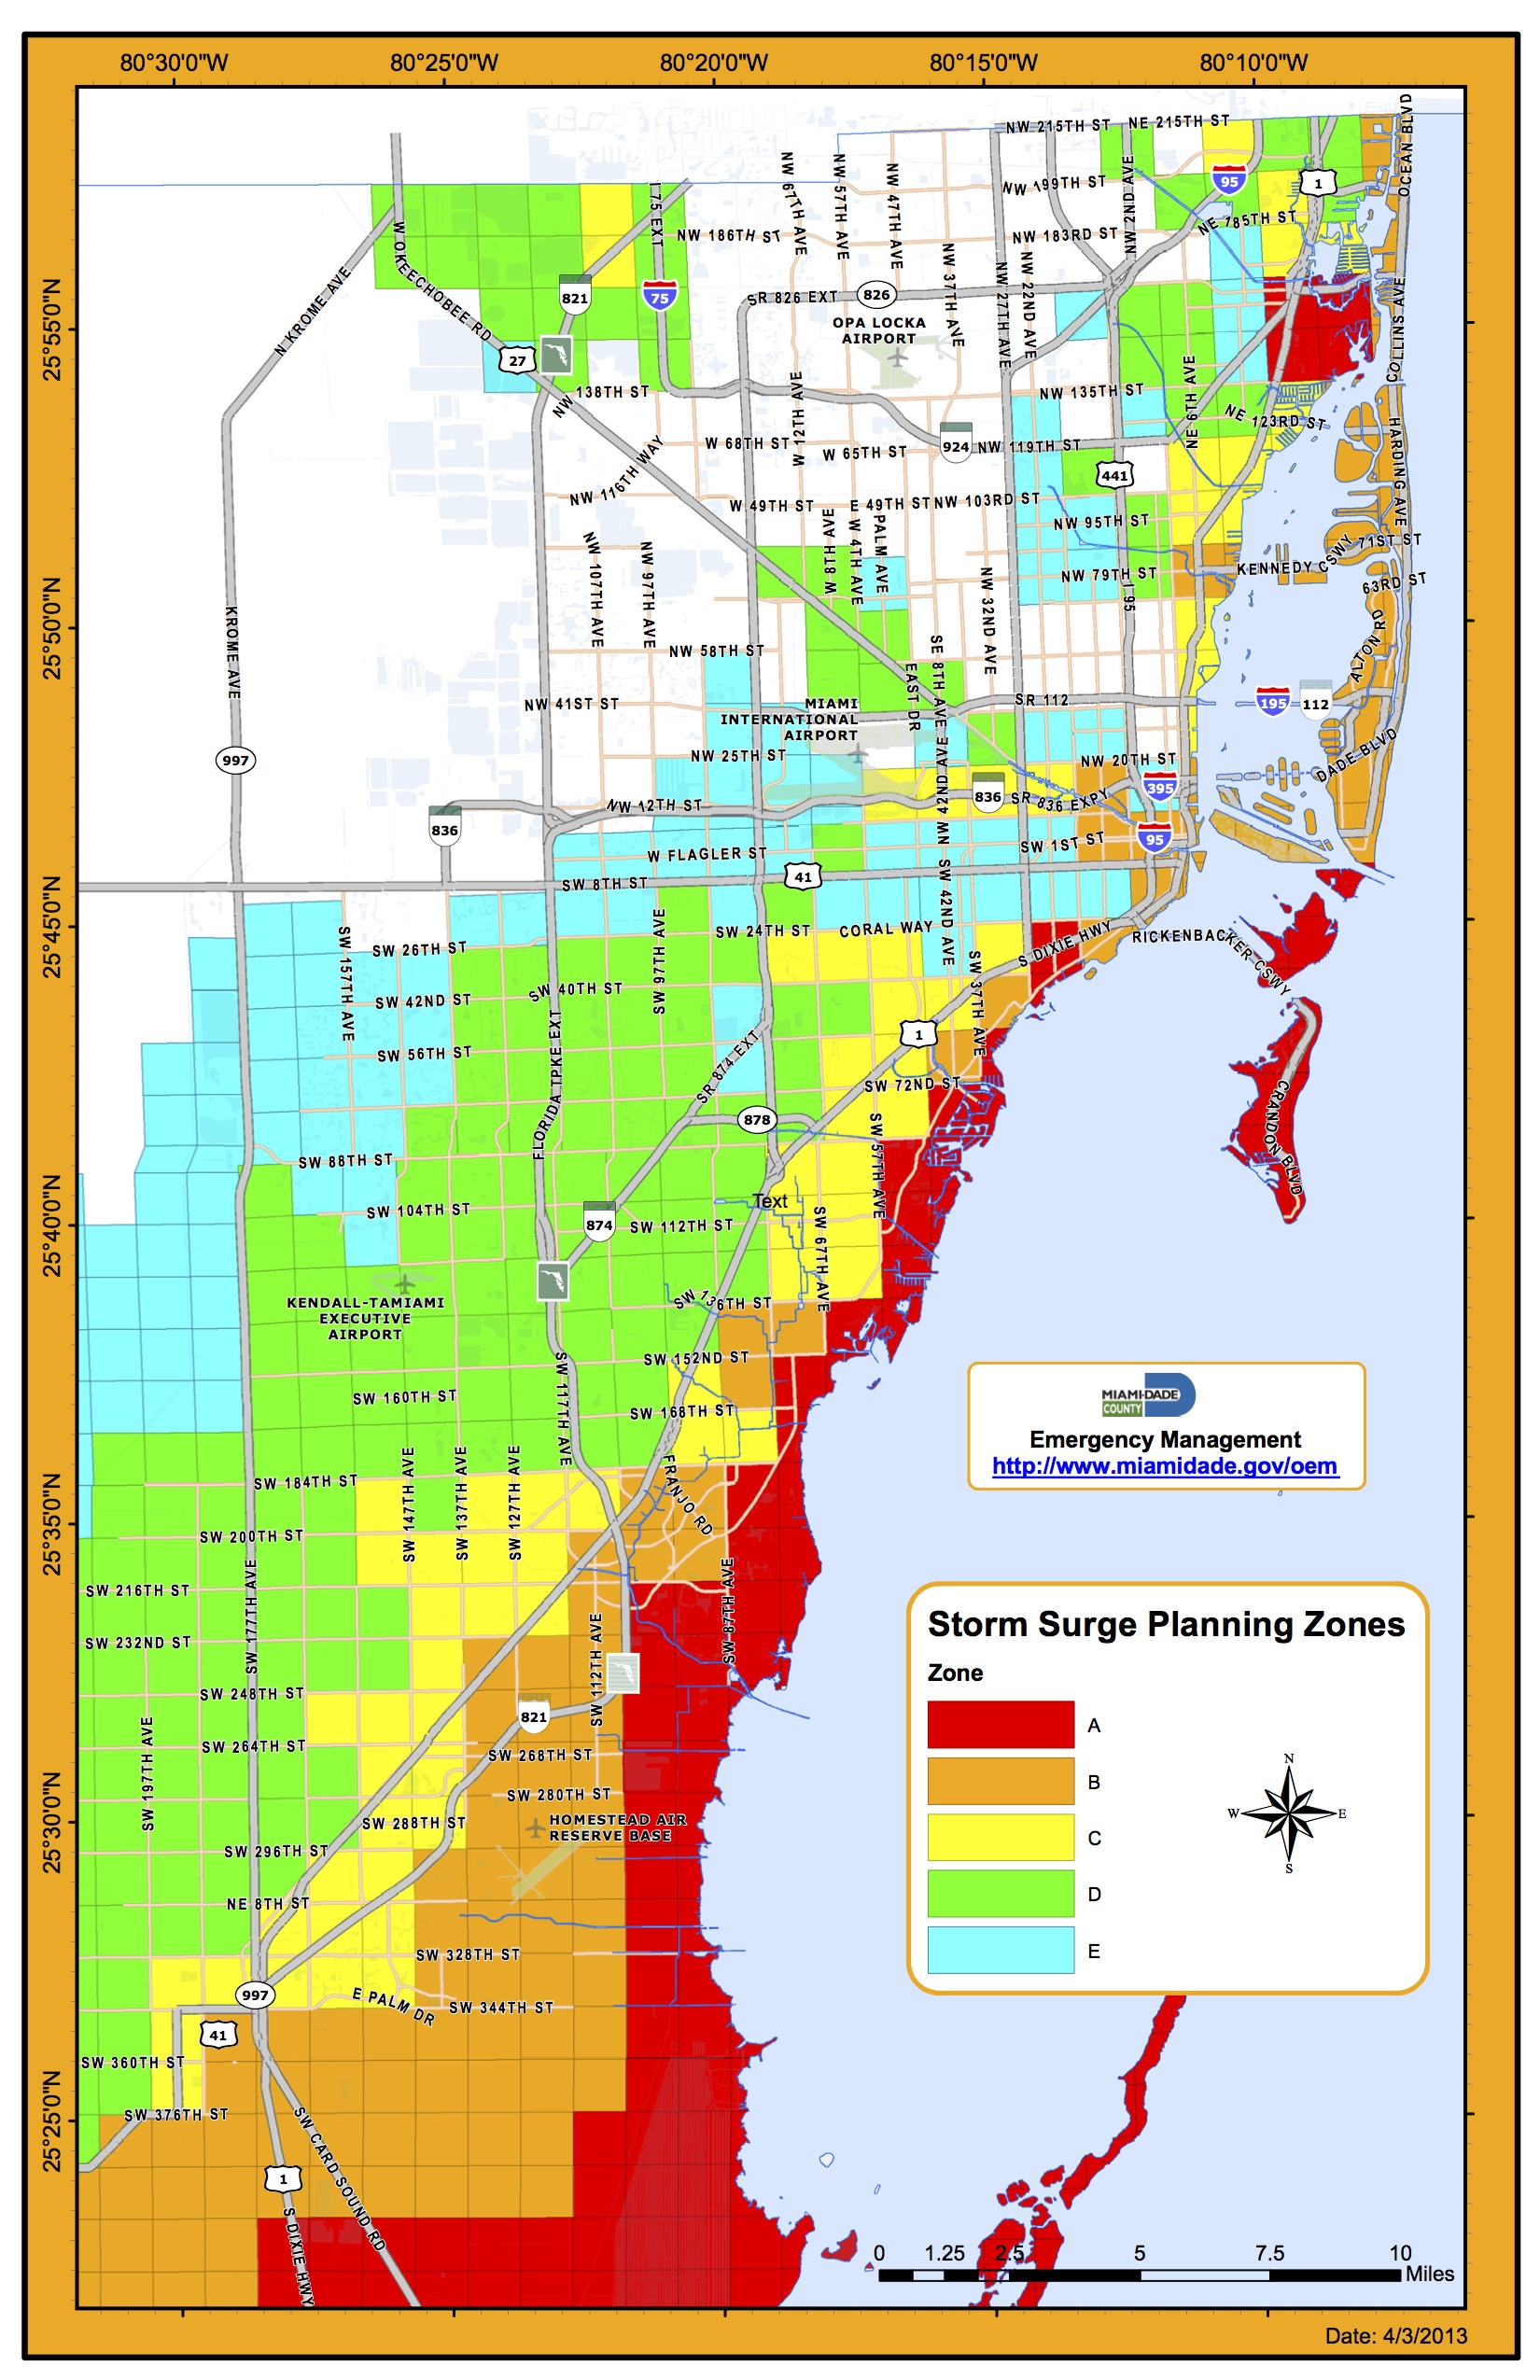 Storm Surge Planning Zone Map